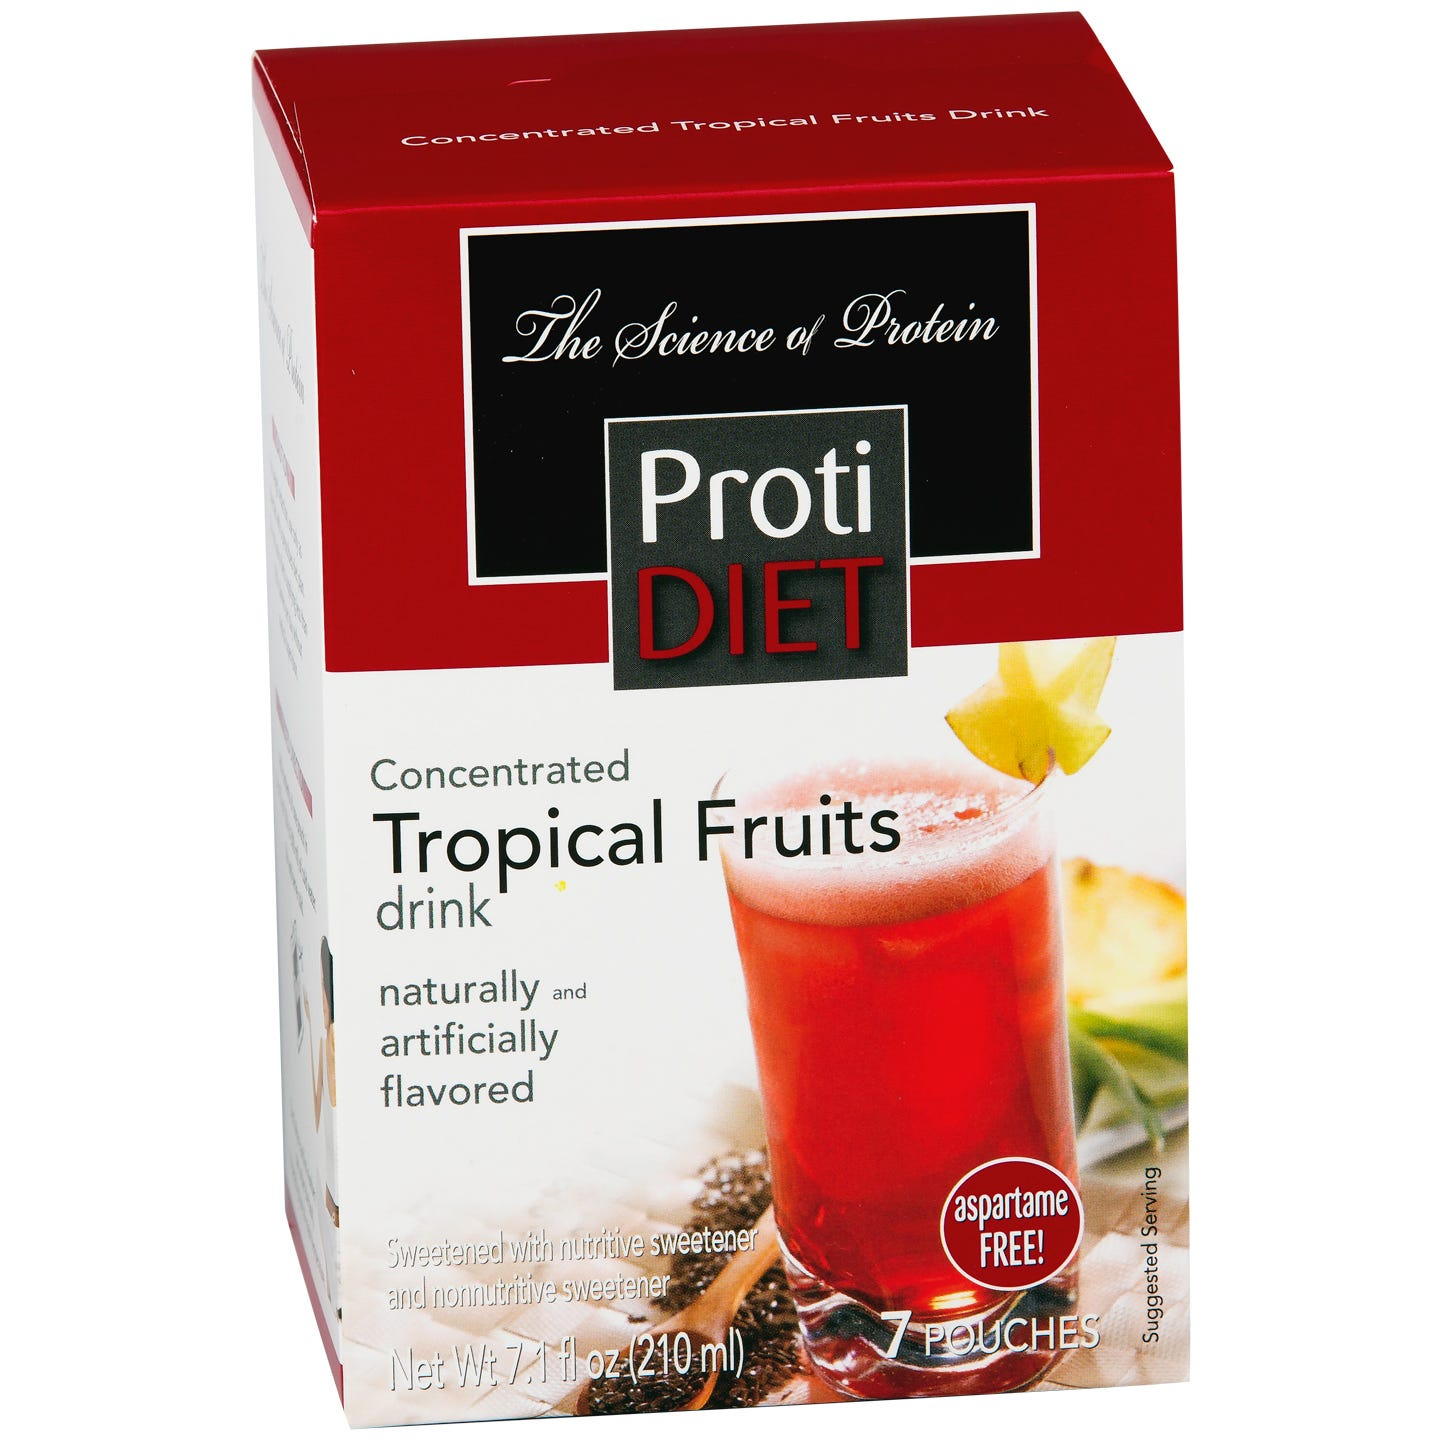 ProtiDiet Protein Fruit Drink Concentrate - Tropical Fruits